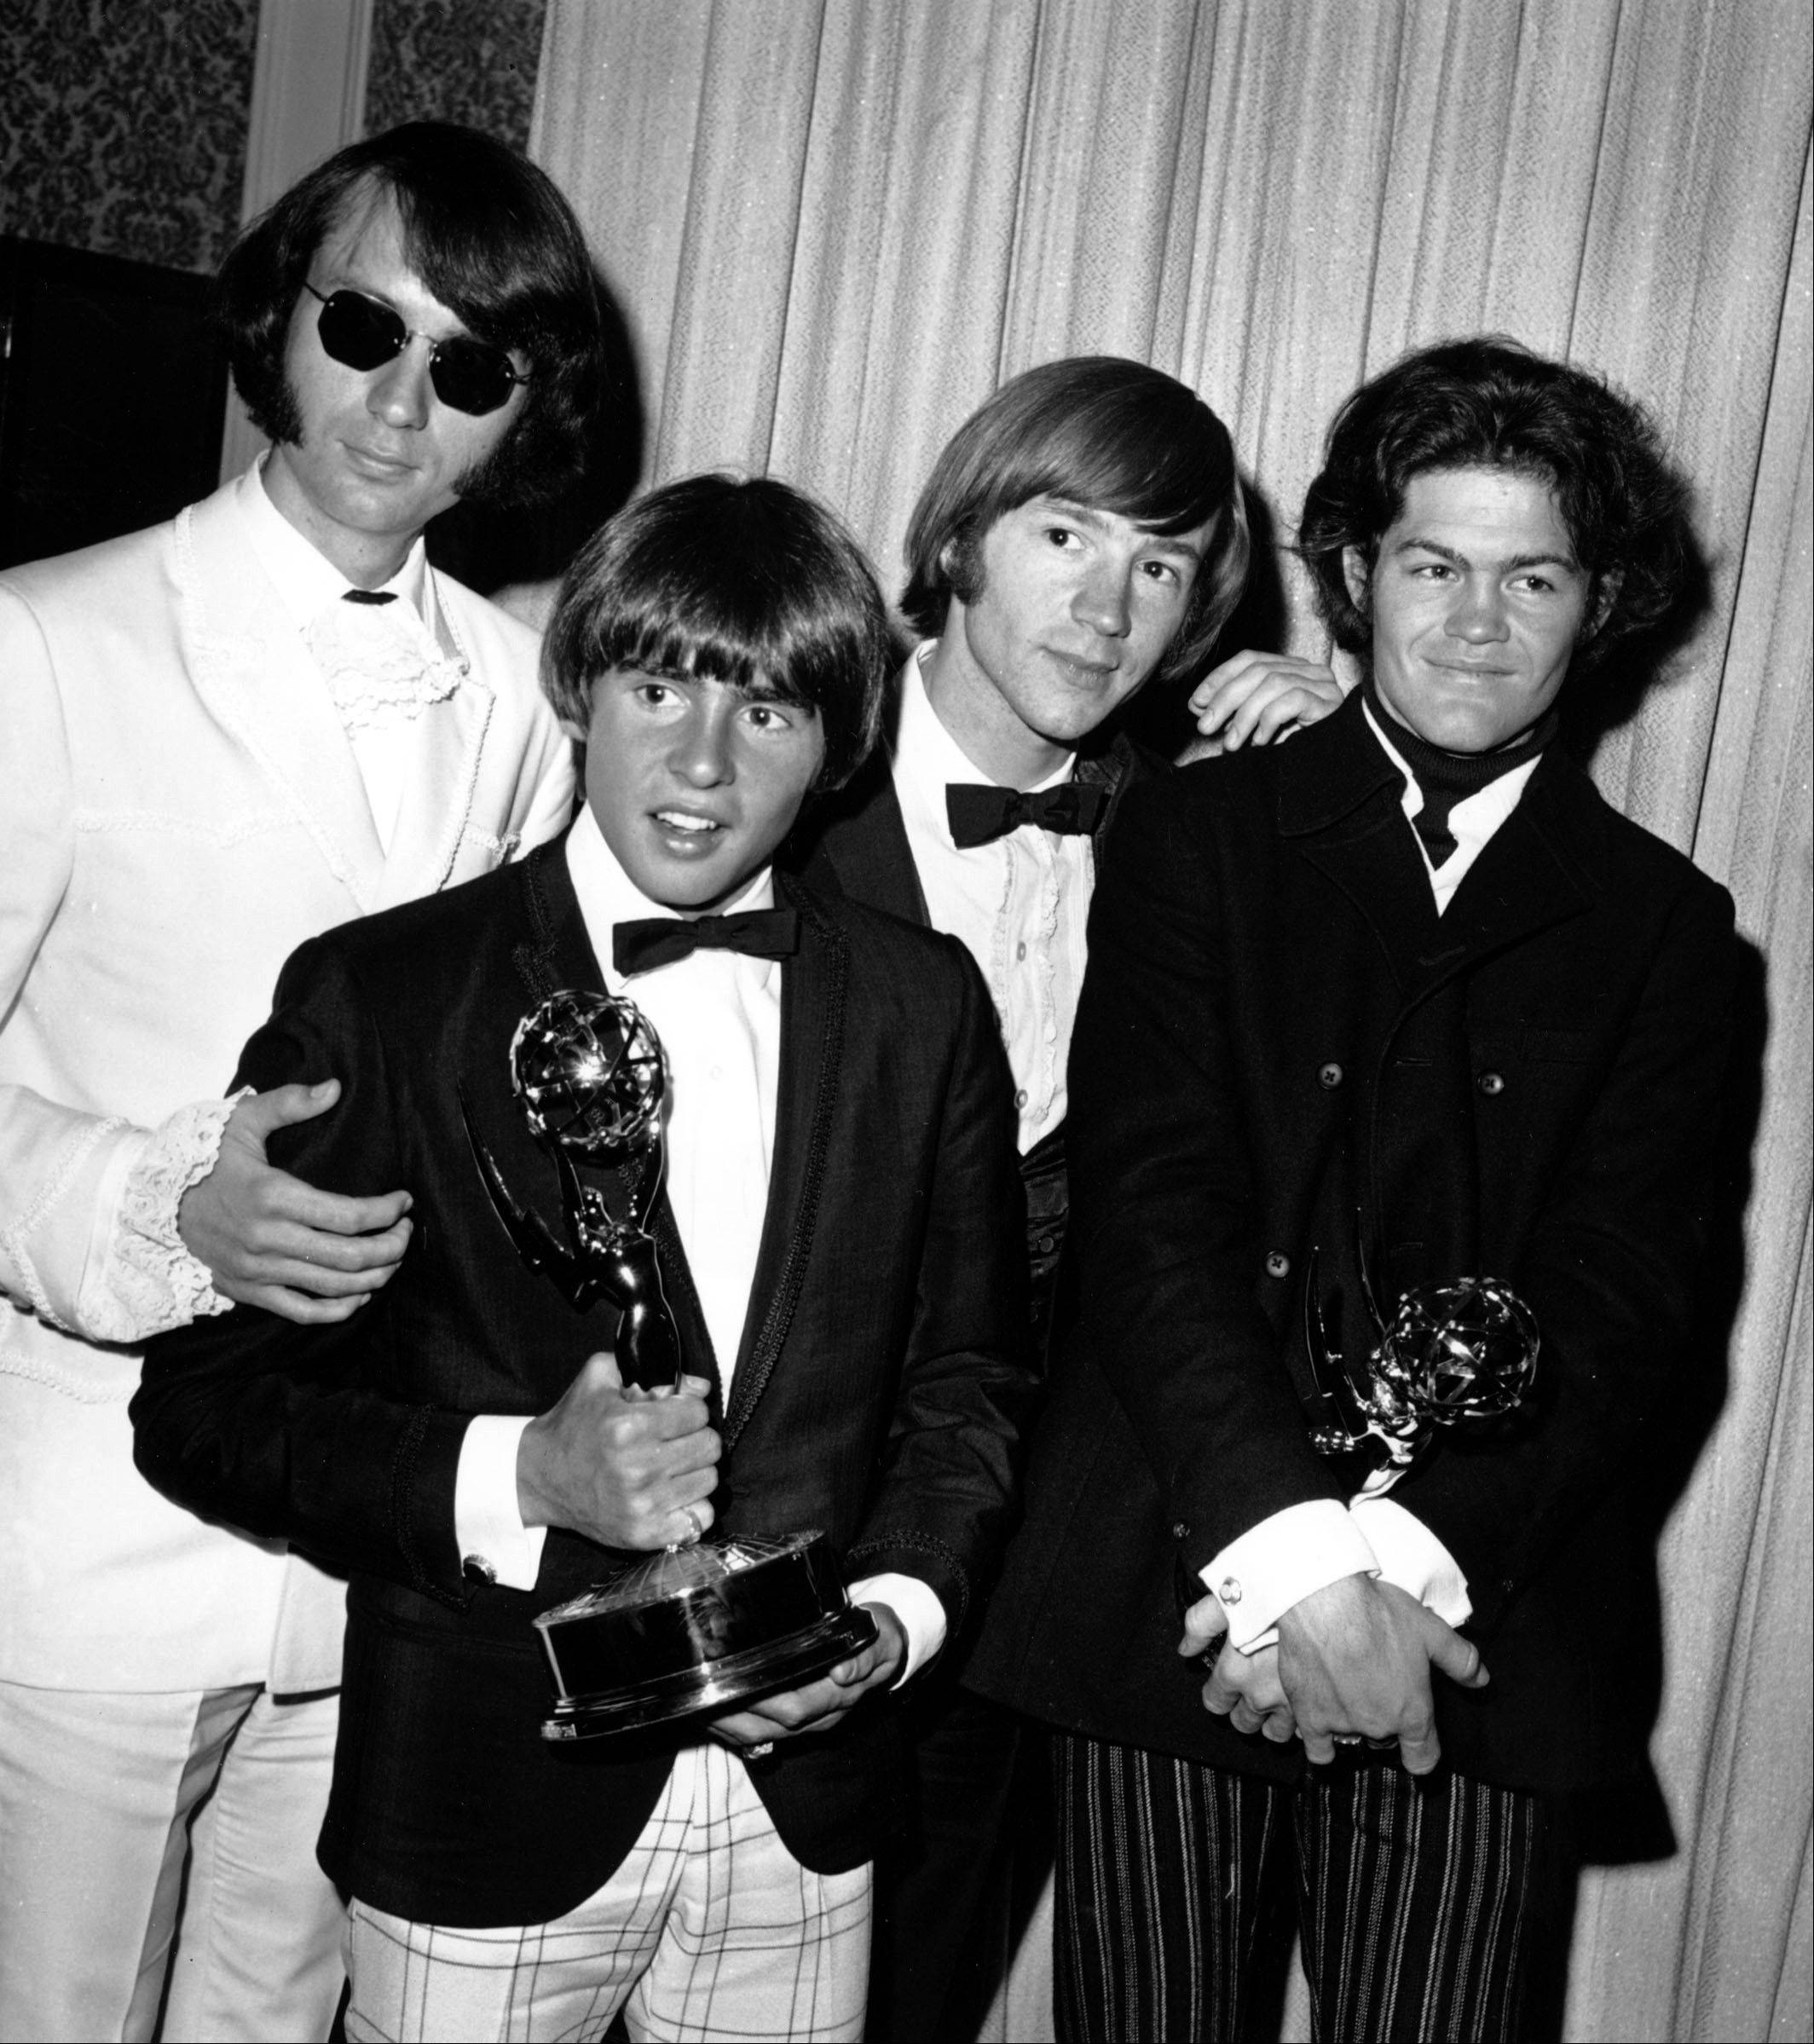 Davy Jones, second from left, who died Wednesday at age 66, rose to fame in 1965 when he joined The Monkees, a British popular rock group formed for the TV show of the same name.